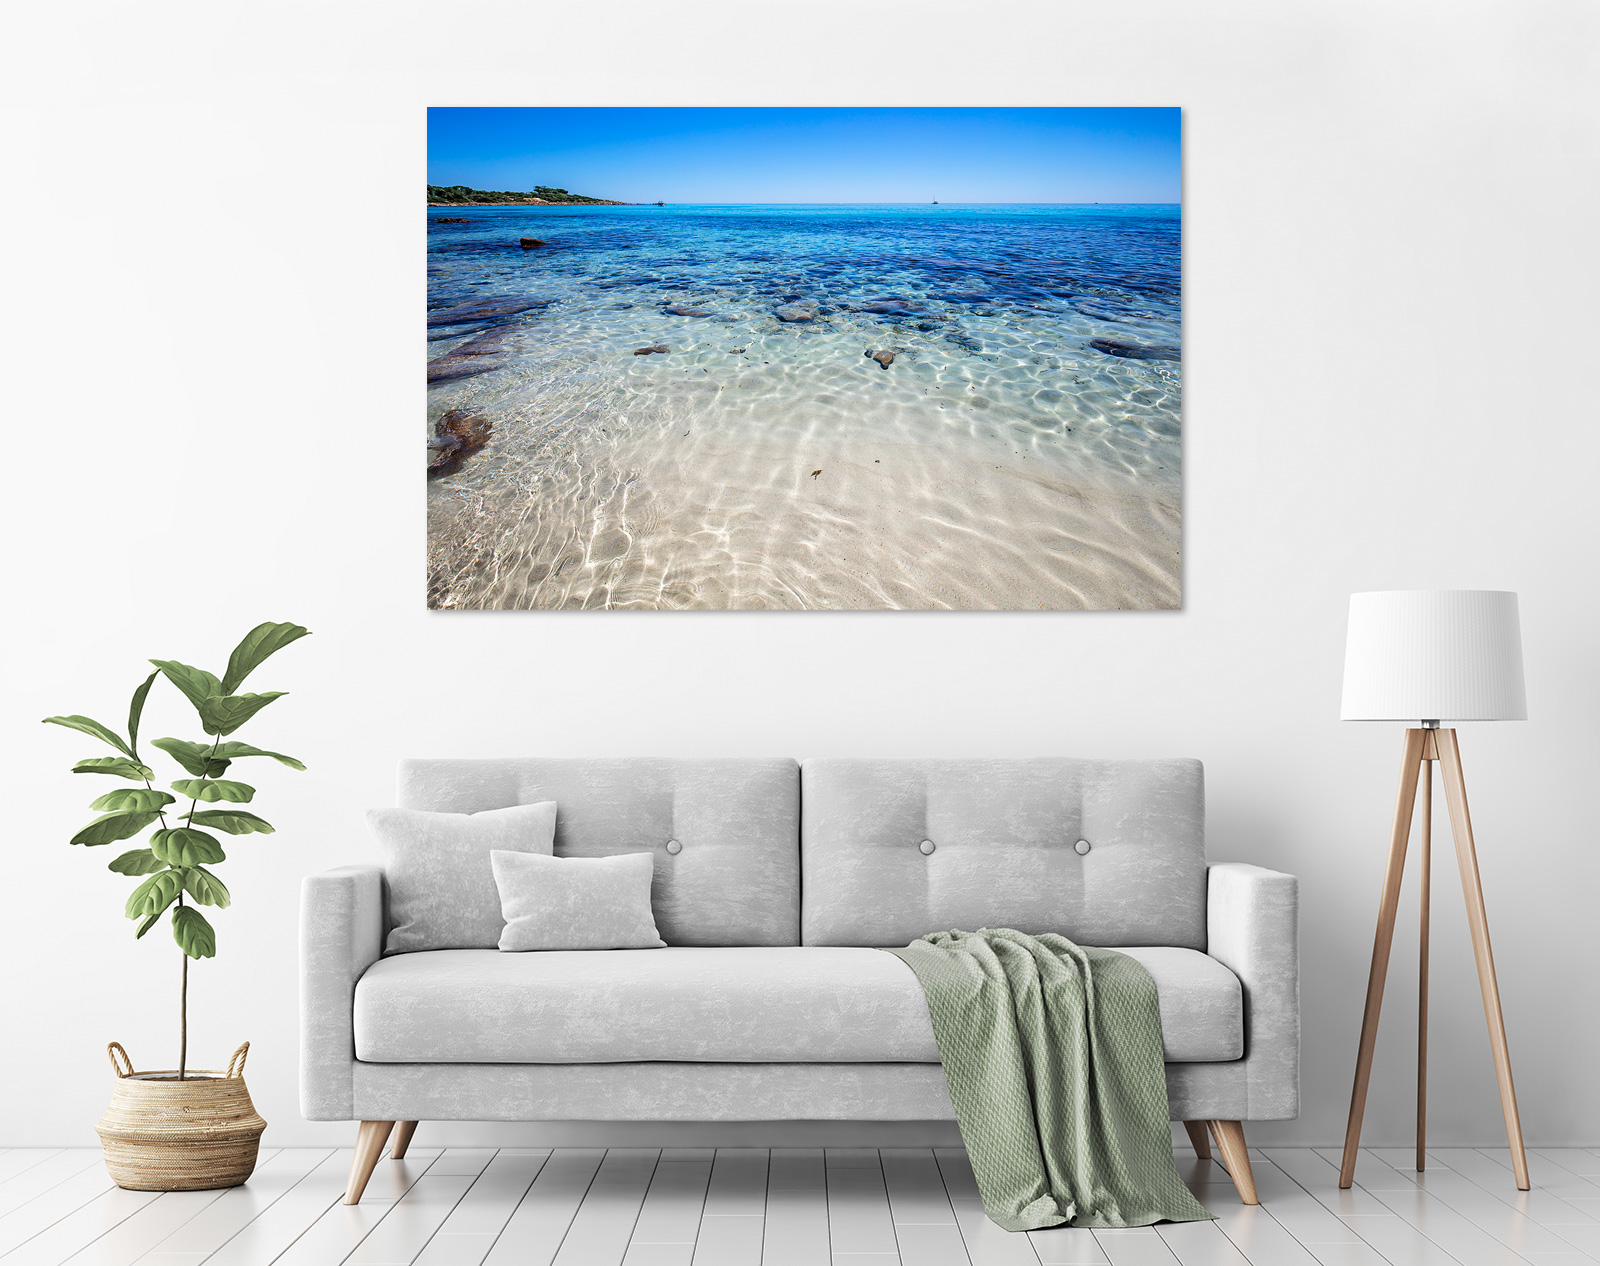 Jason Mazur - 'Meelup Coastline, Dunsborough 013' in a room